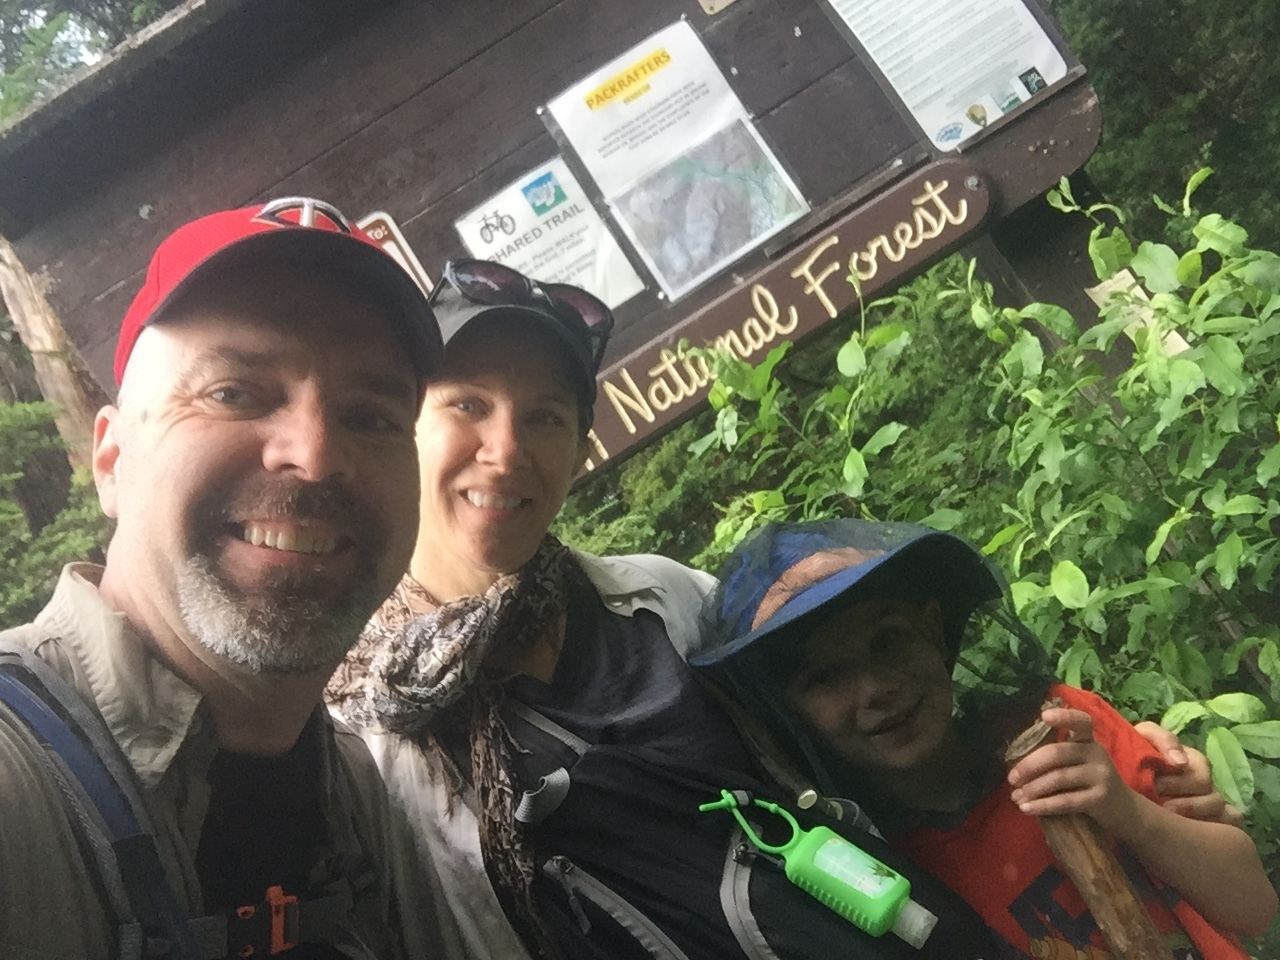 After a great hike. Free bus takes us back to the trailhead